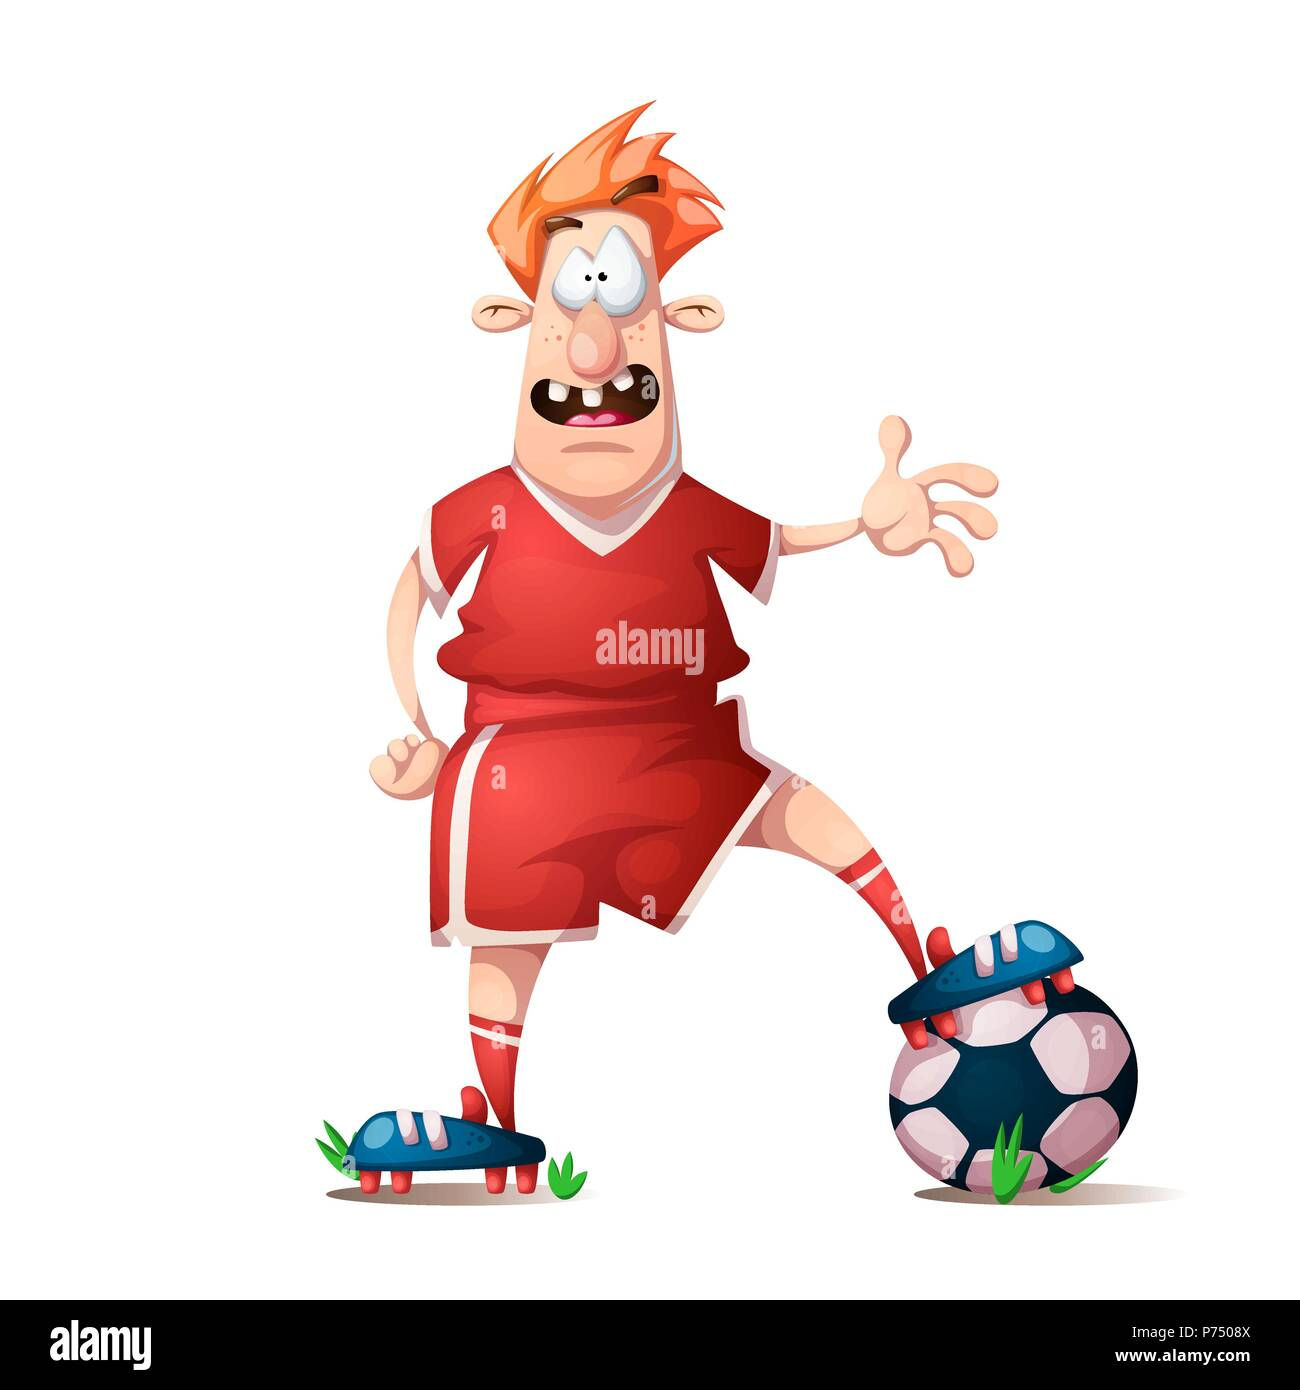 Football Cartoon High Resolution Stock Photography And Images Alamy